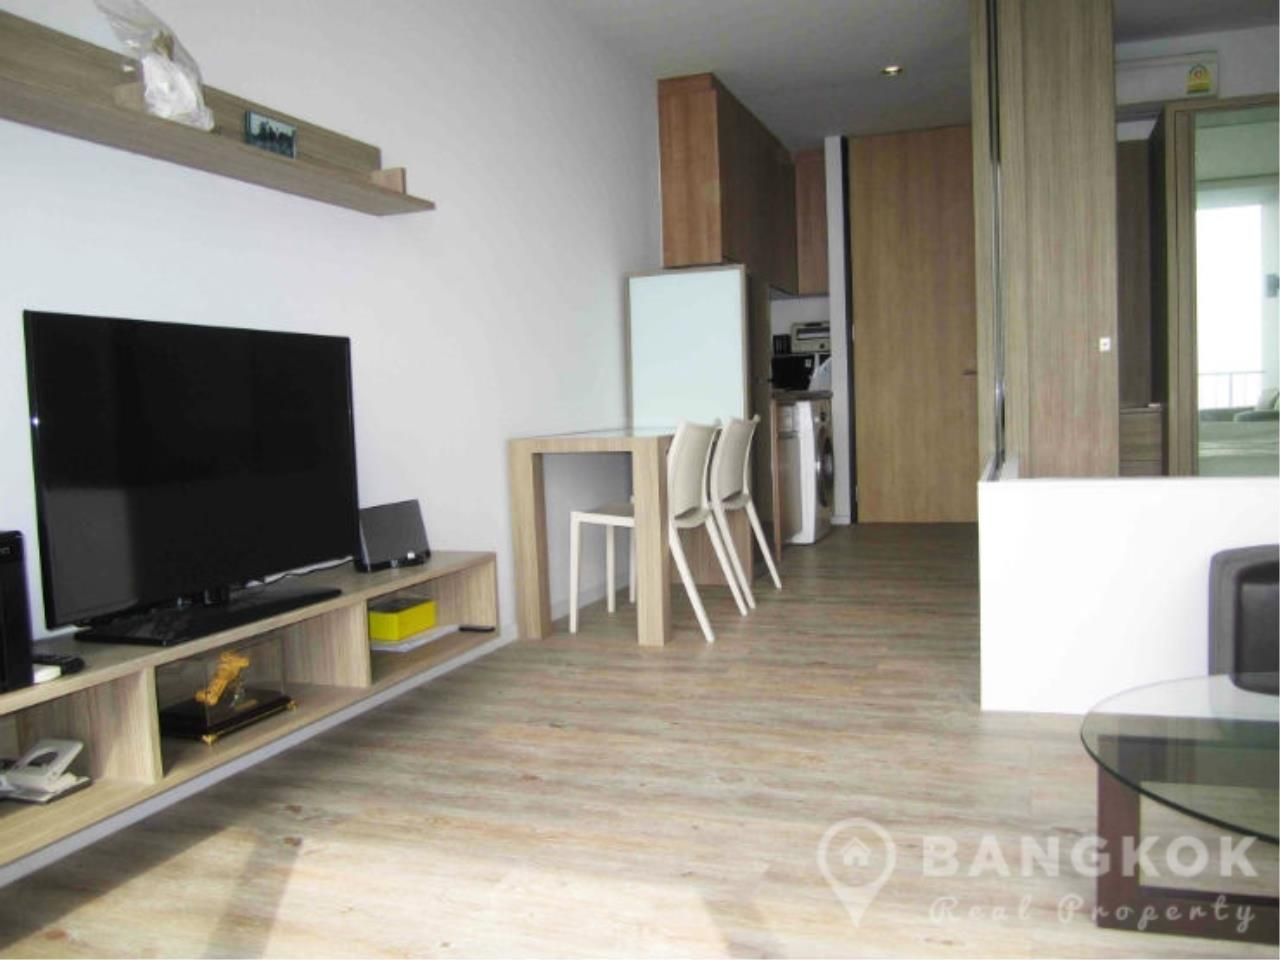 Bangkok Real Property Agency's Issara Ladprao | Stylish High Floor Studio with Stunning Views 3